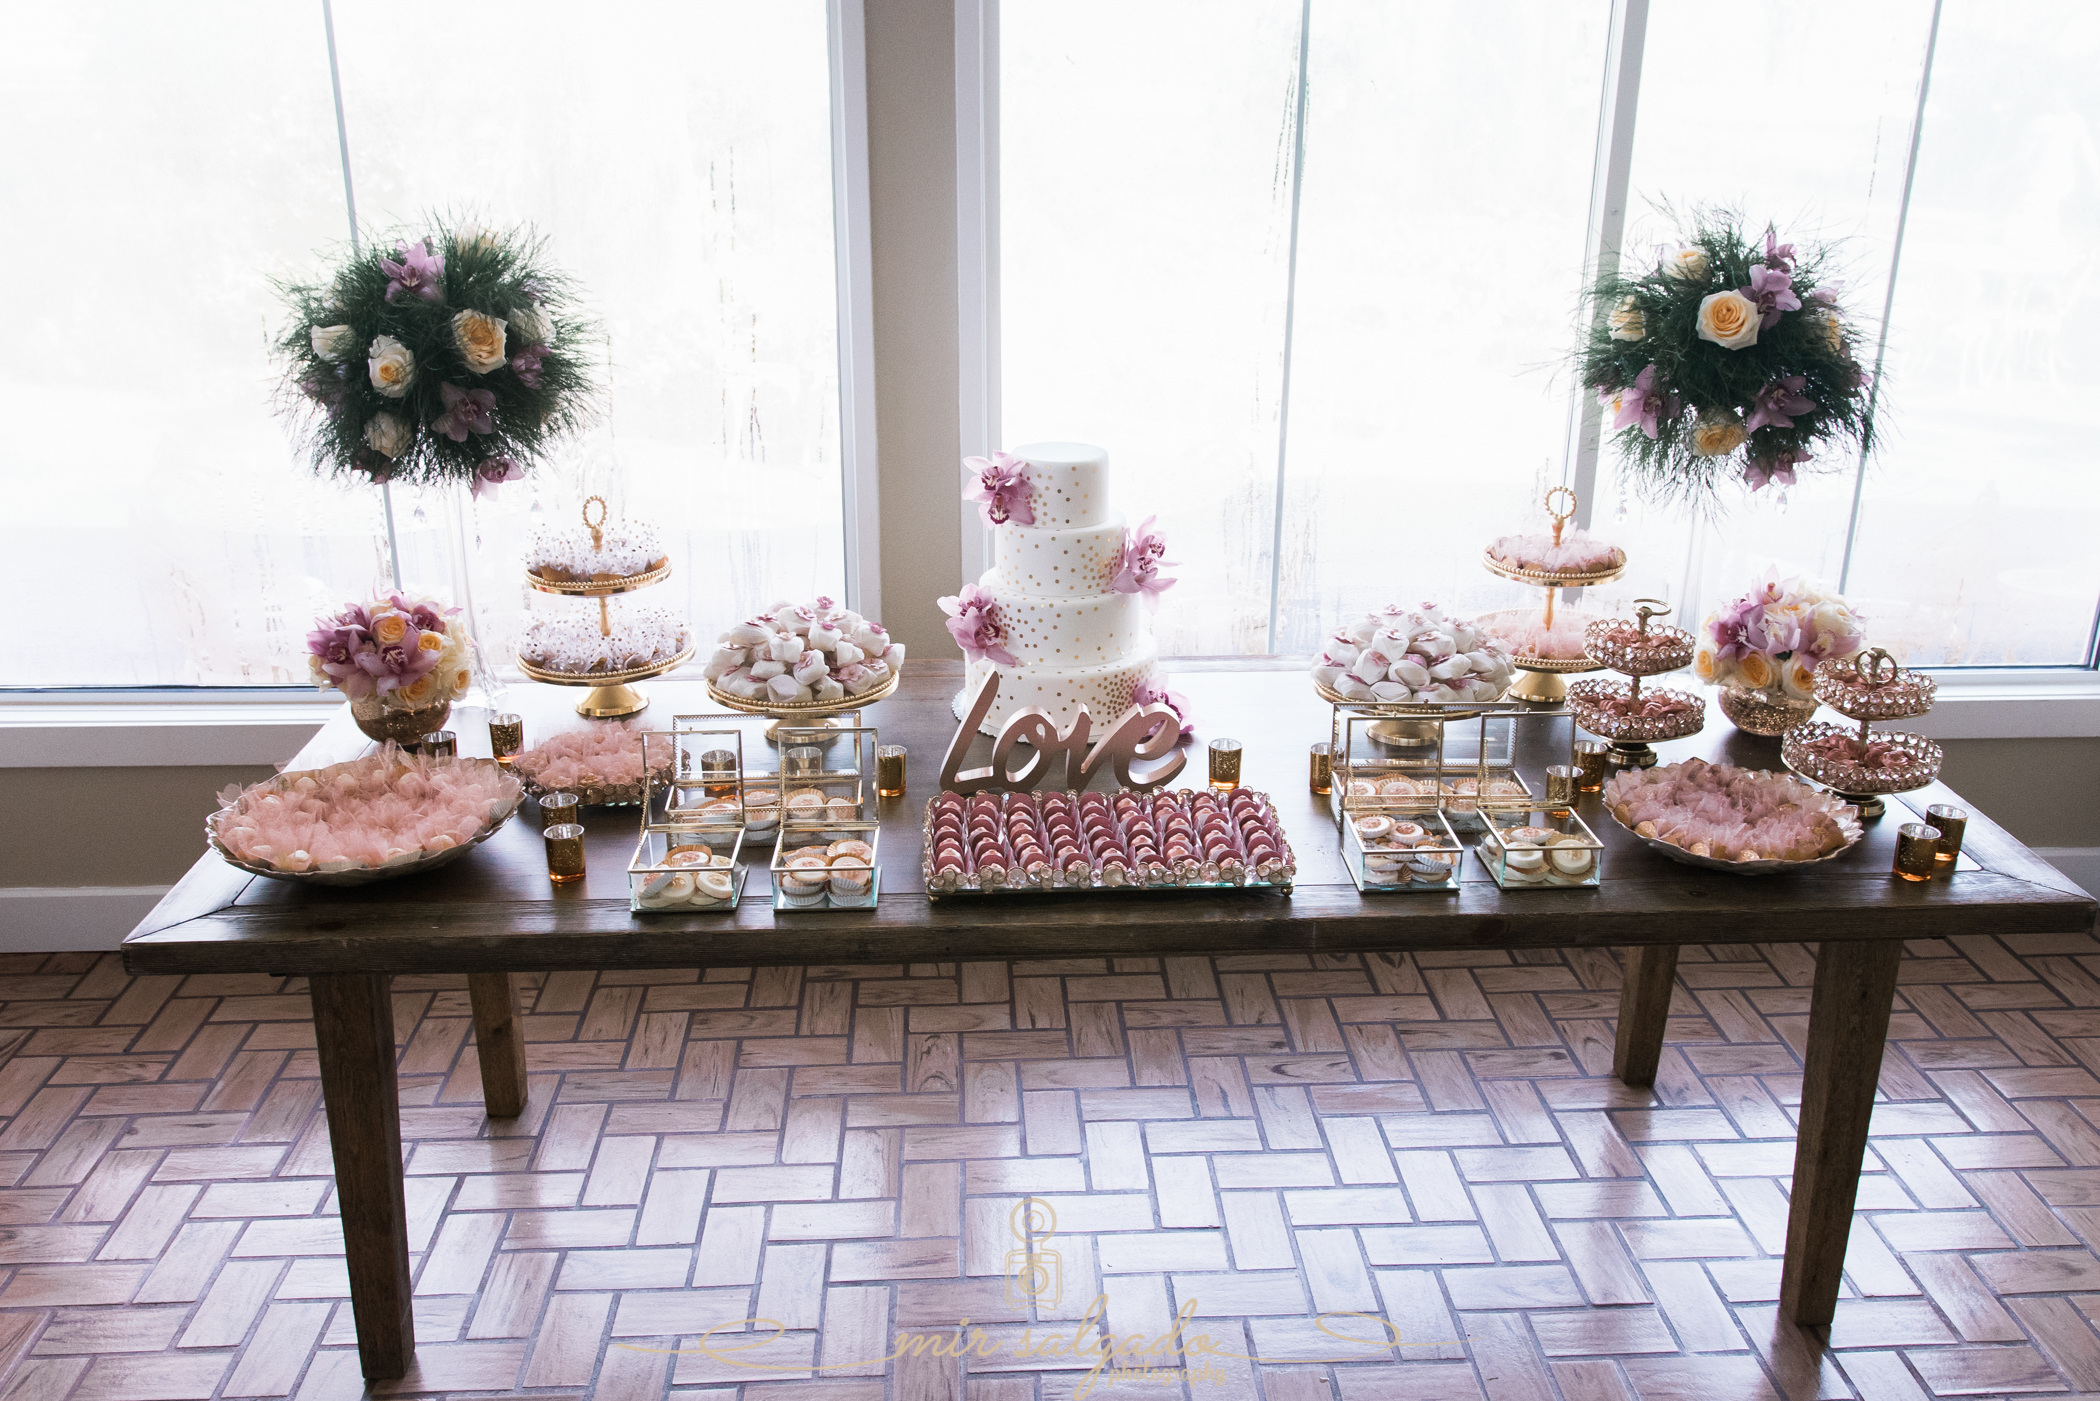 Sweet-table-photo, golden-pin-decoration-photo,